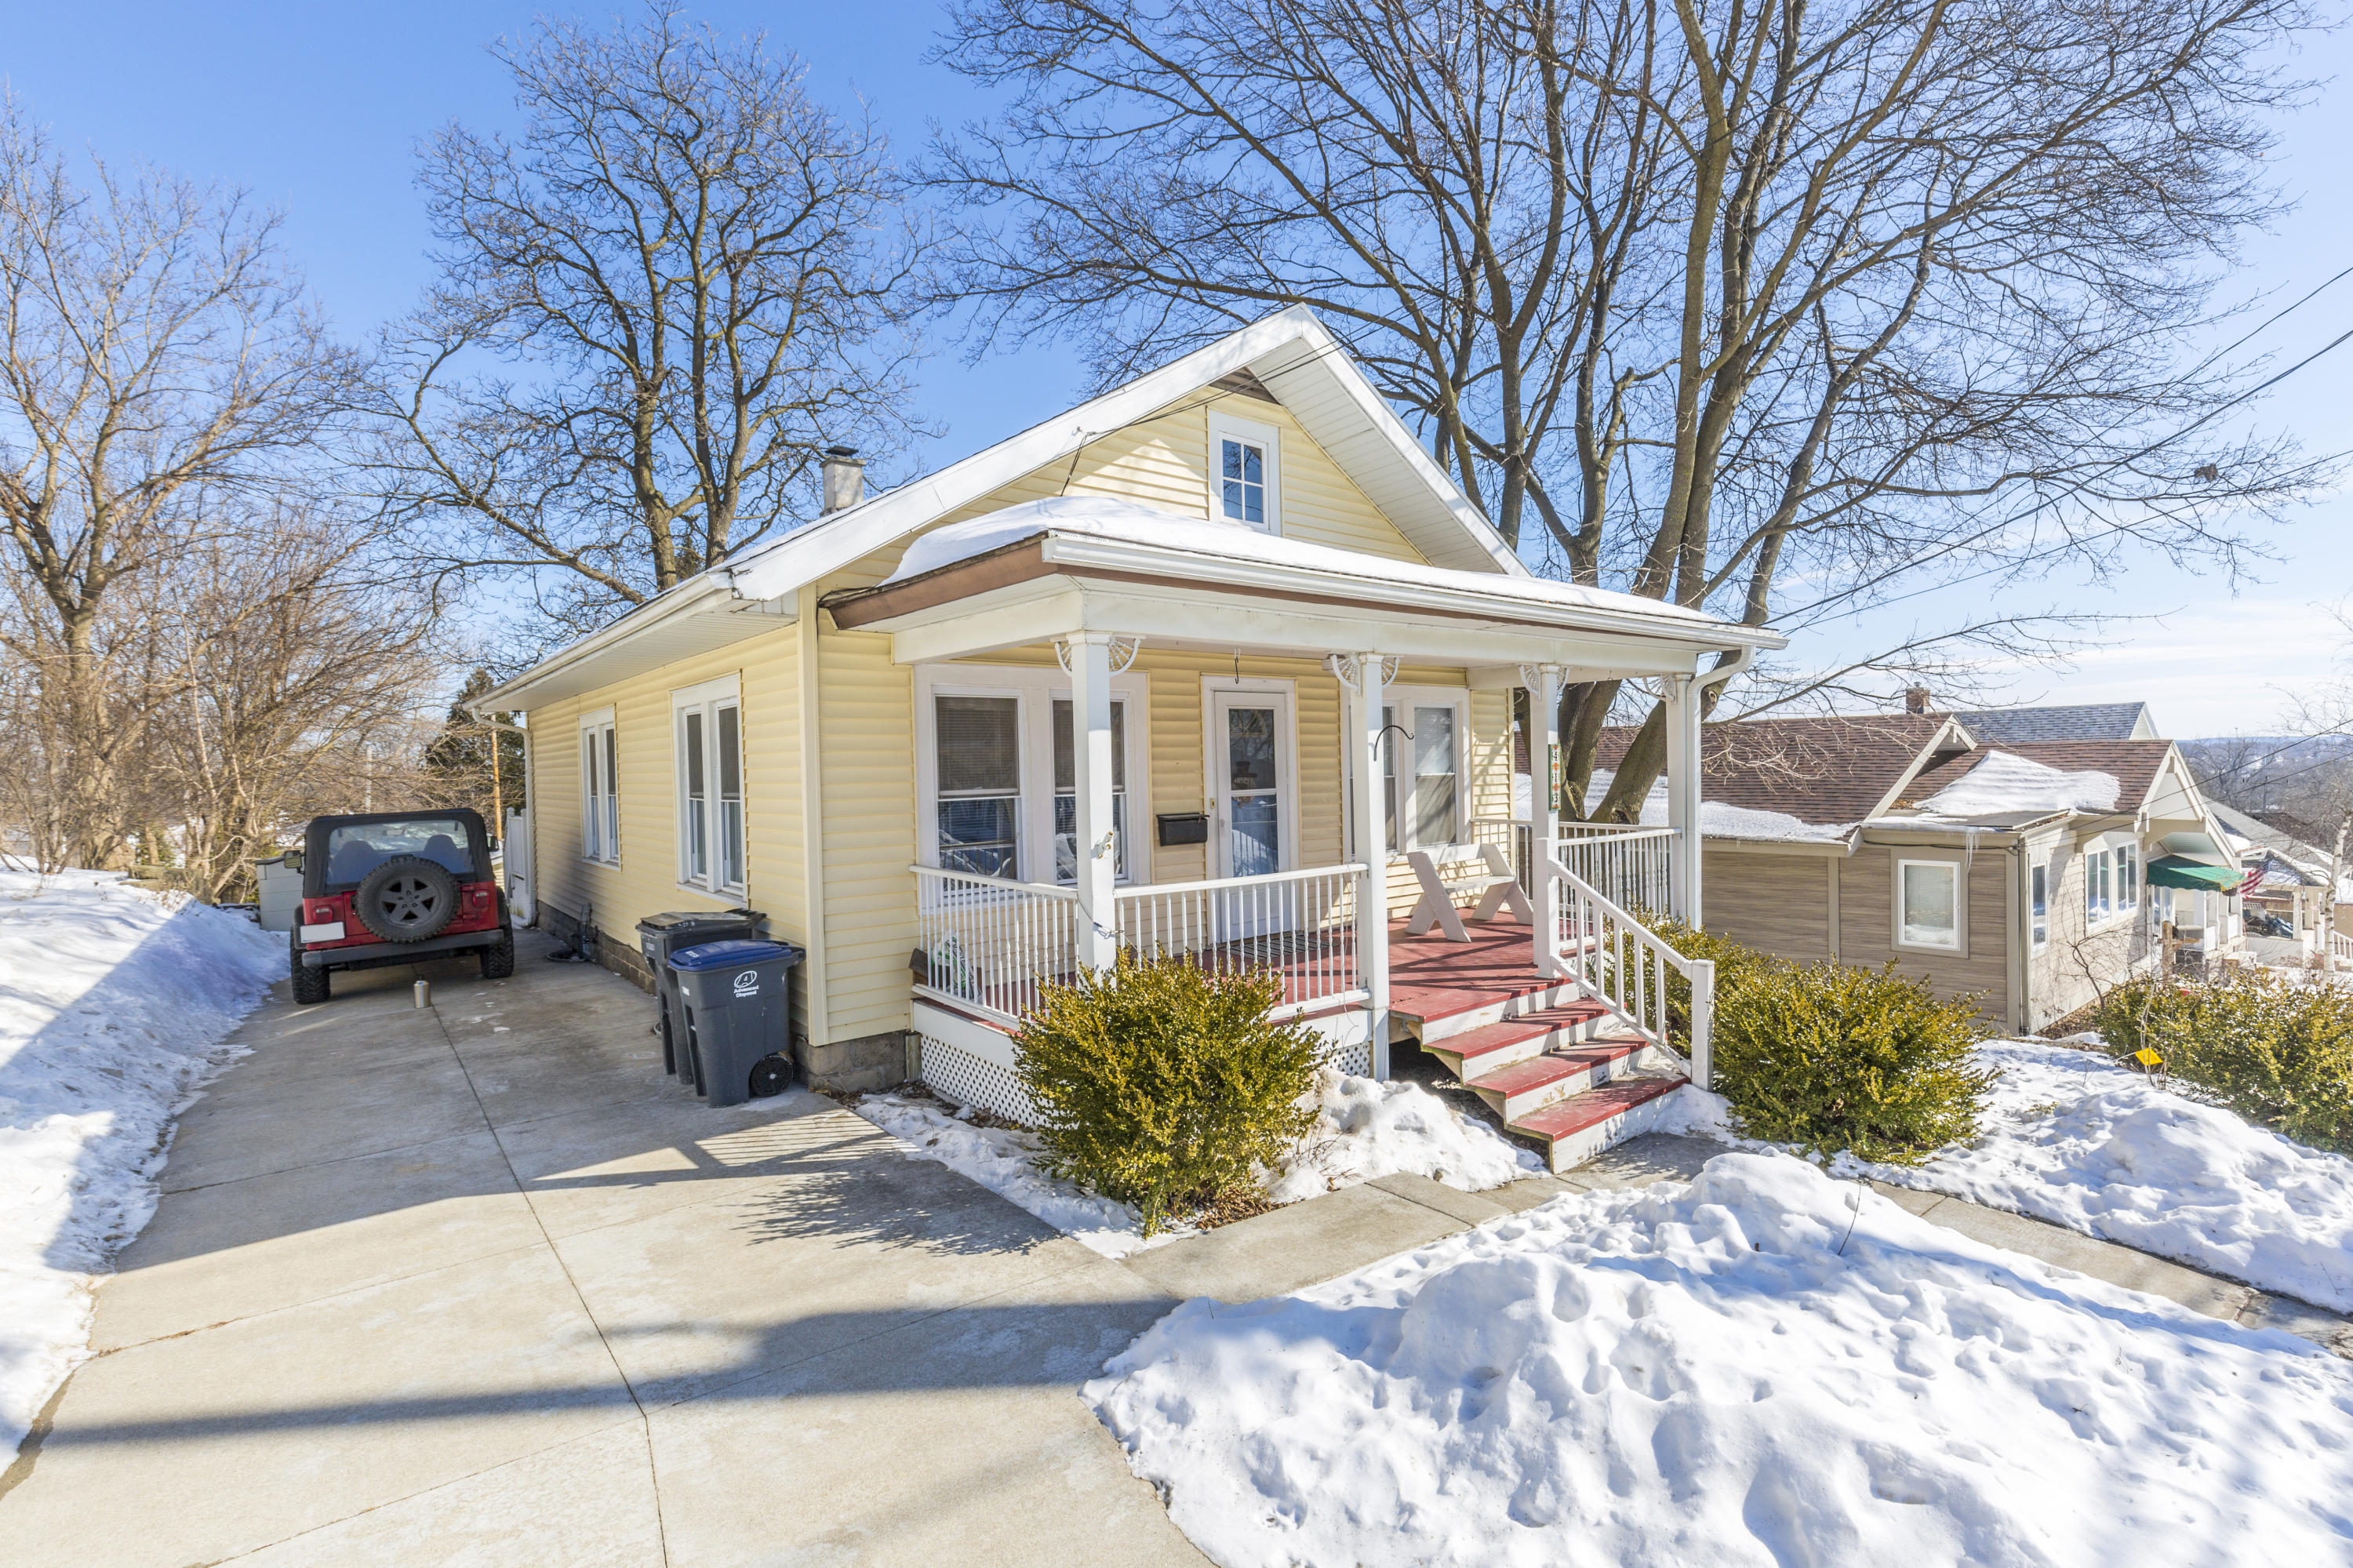 413 Fairview Ave, Waukesha, Wisconsin 53188, 2 Bedrooms Bedrooms, 5 Rooms Rooms,1 BathroomBathrooms,Single-Family,For Sale,Fairview Ave,1625640